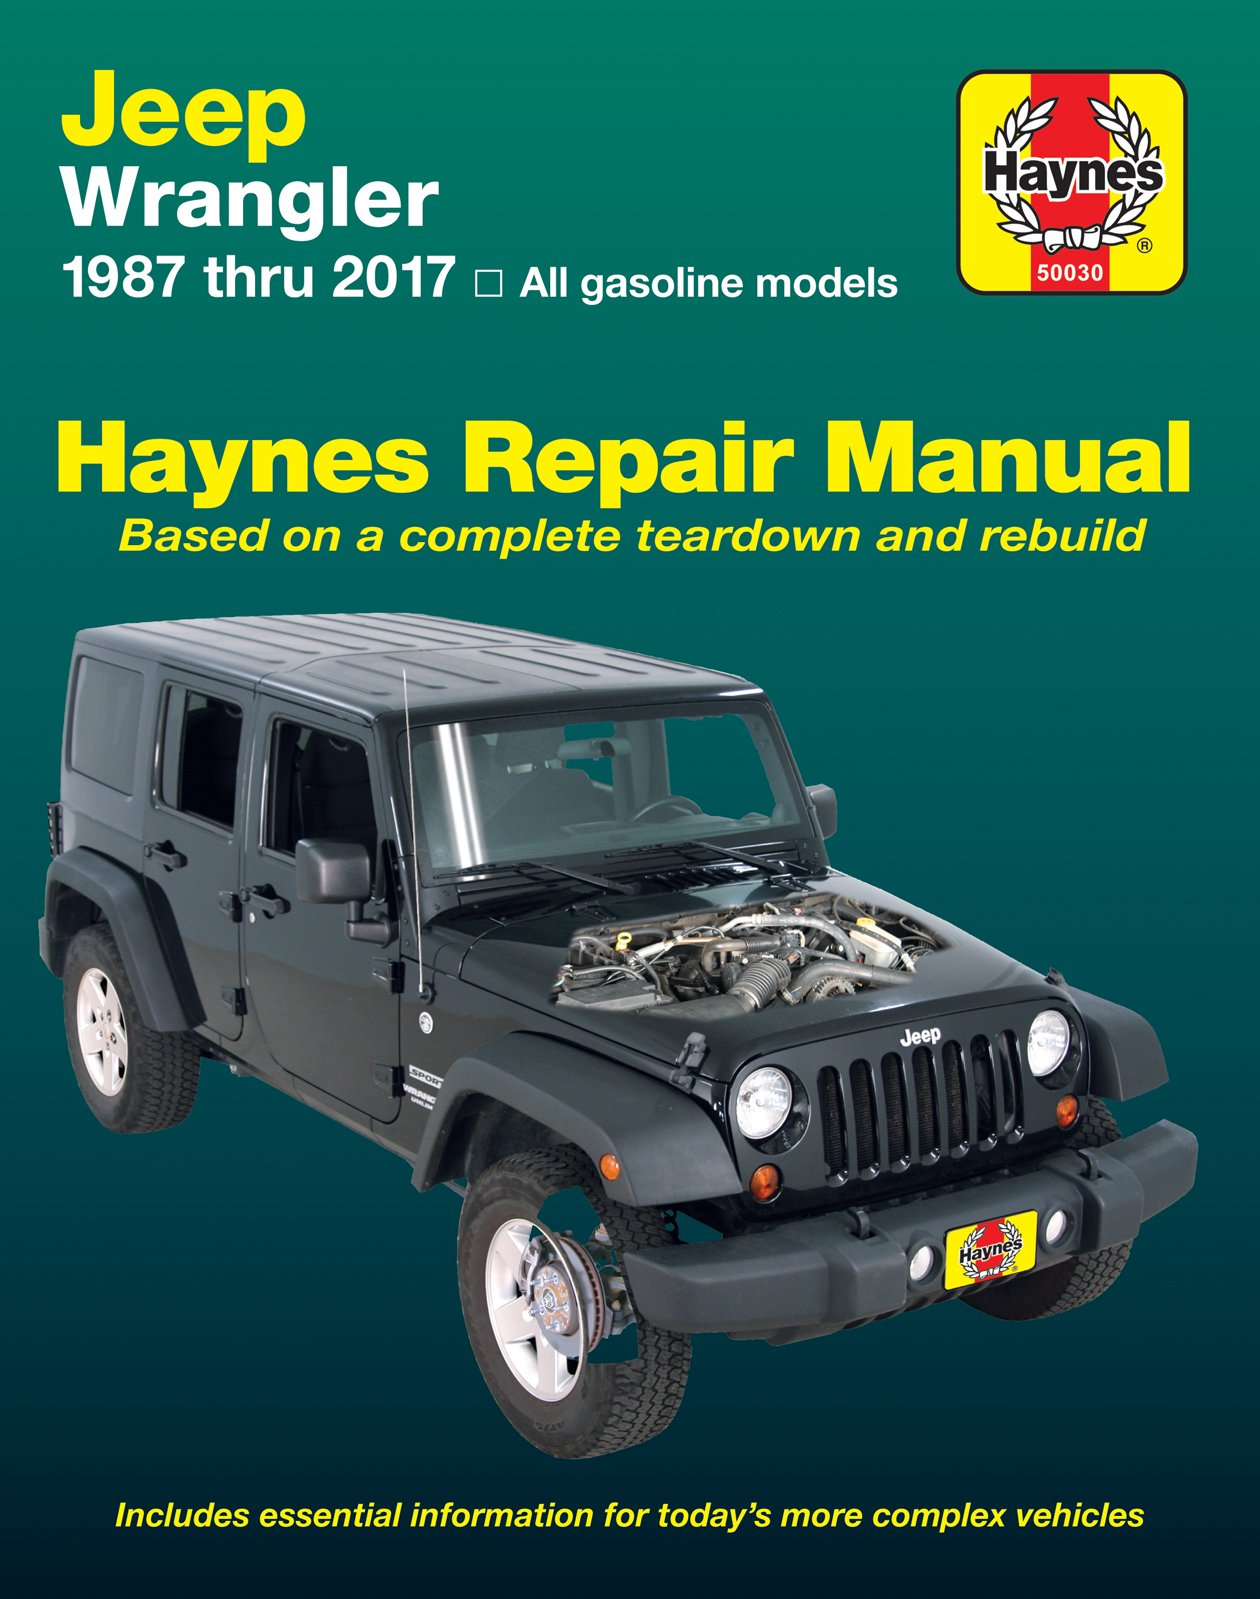 Haynes Repair Manual 50030 for Jeep Wrangler 1987-2017: 0038345017773:  Amazon.com: Books